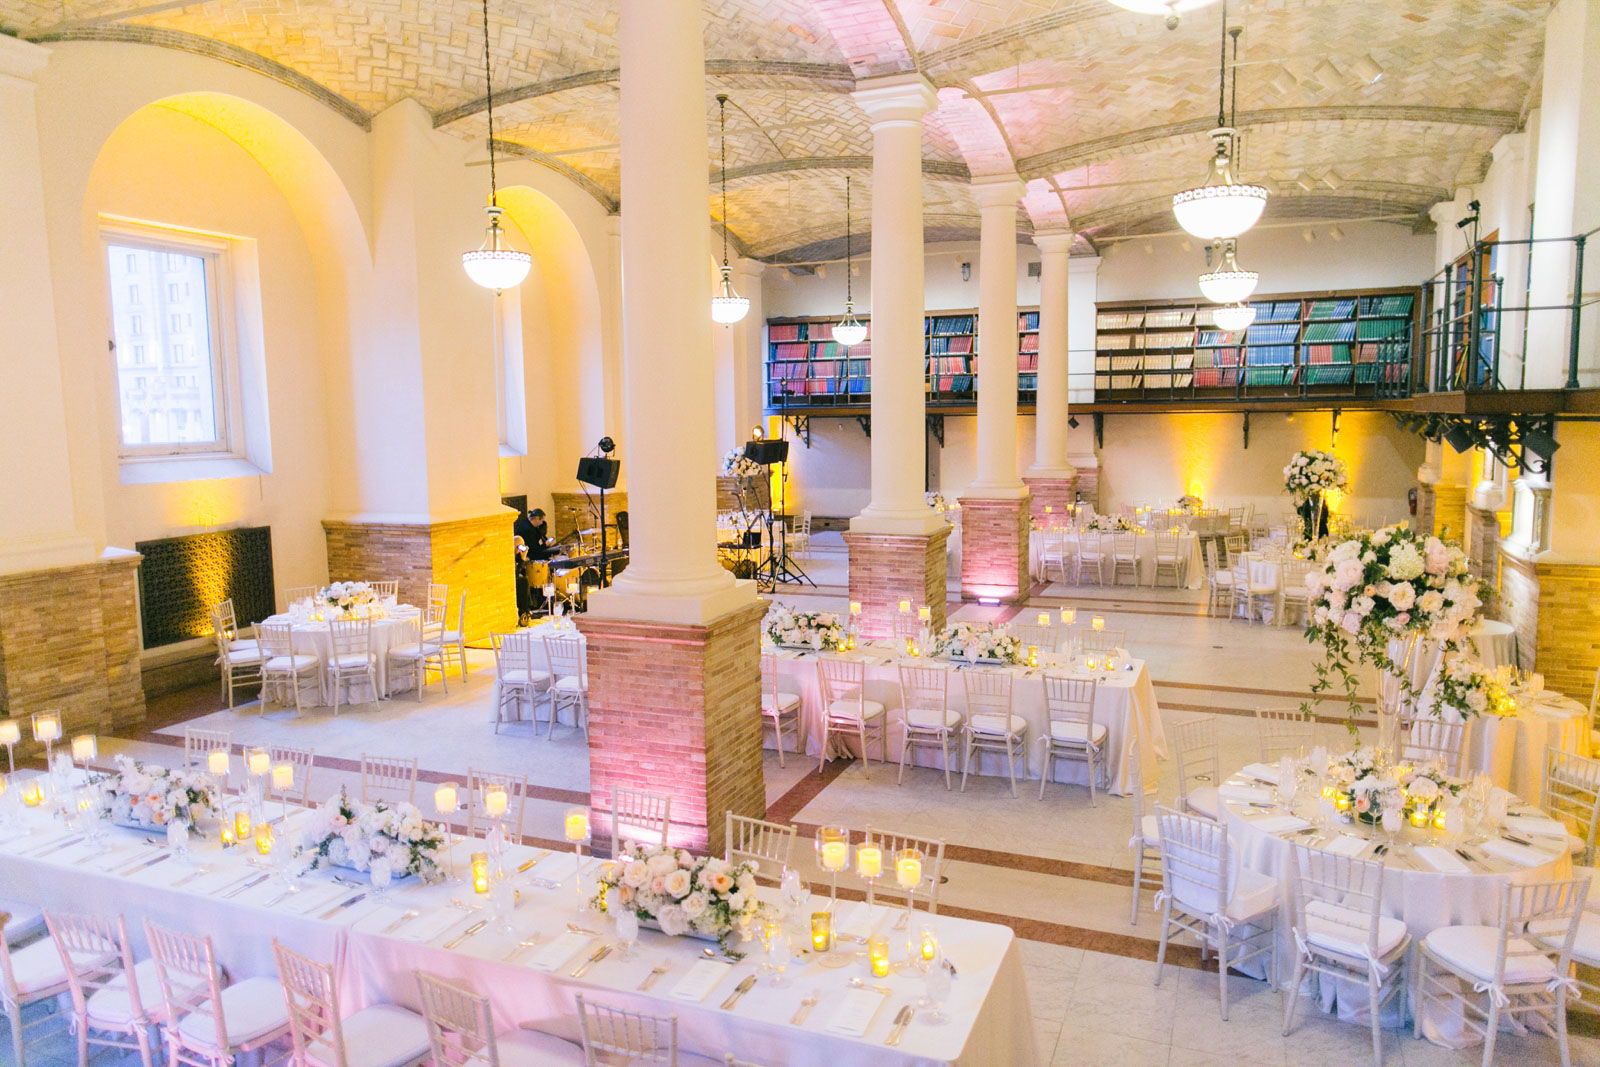 simple clean wedding reception decor in Guastavino room in Boston public library